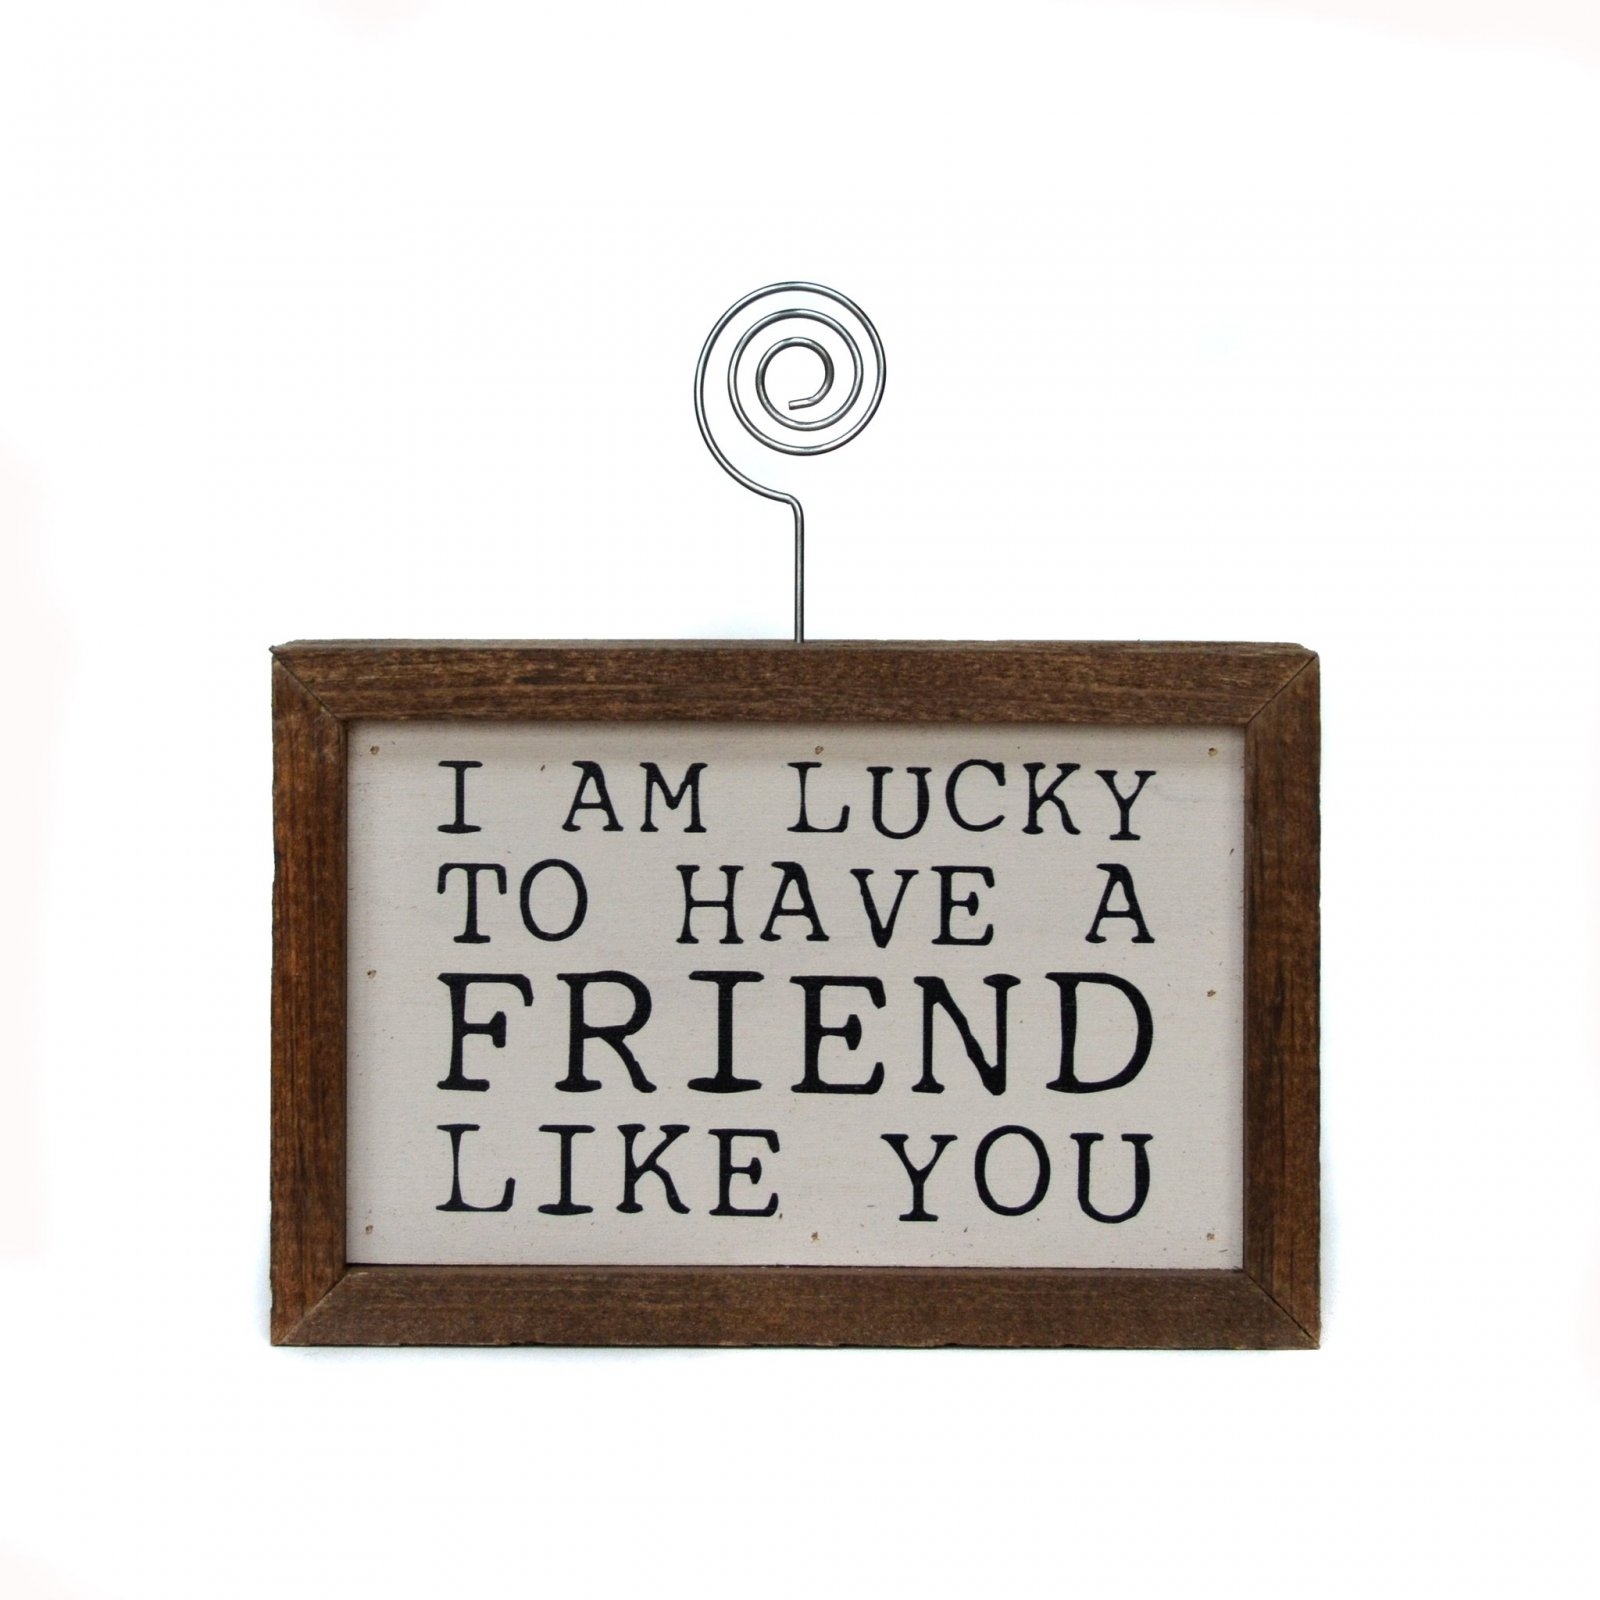 Friend Like You Picture Block with Wire Picture Holder - 6 x 4 x 2 - by Driftwood Studios